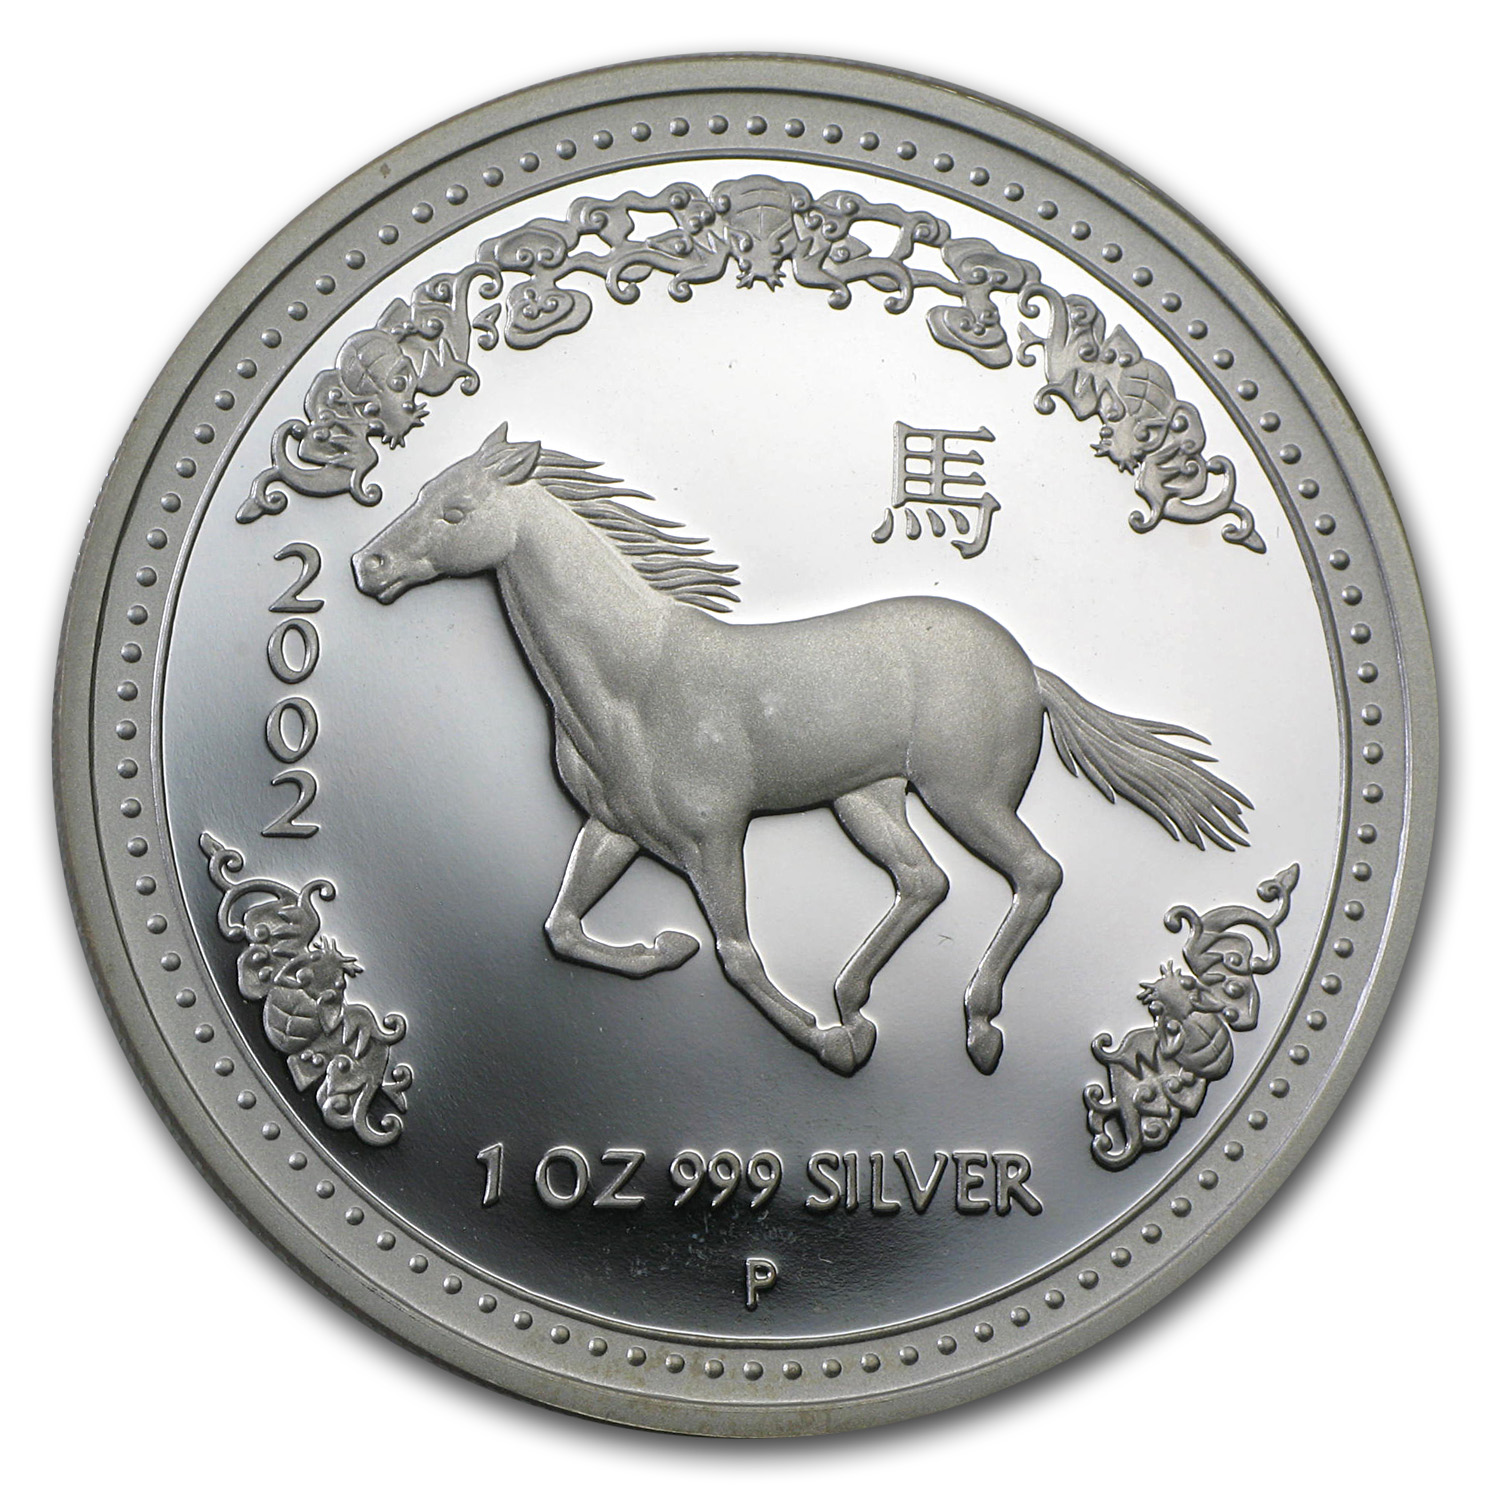 2002 1 oz Proof Silver Year of the Horse SI (Light Abrasions)